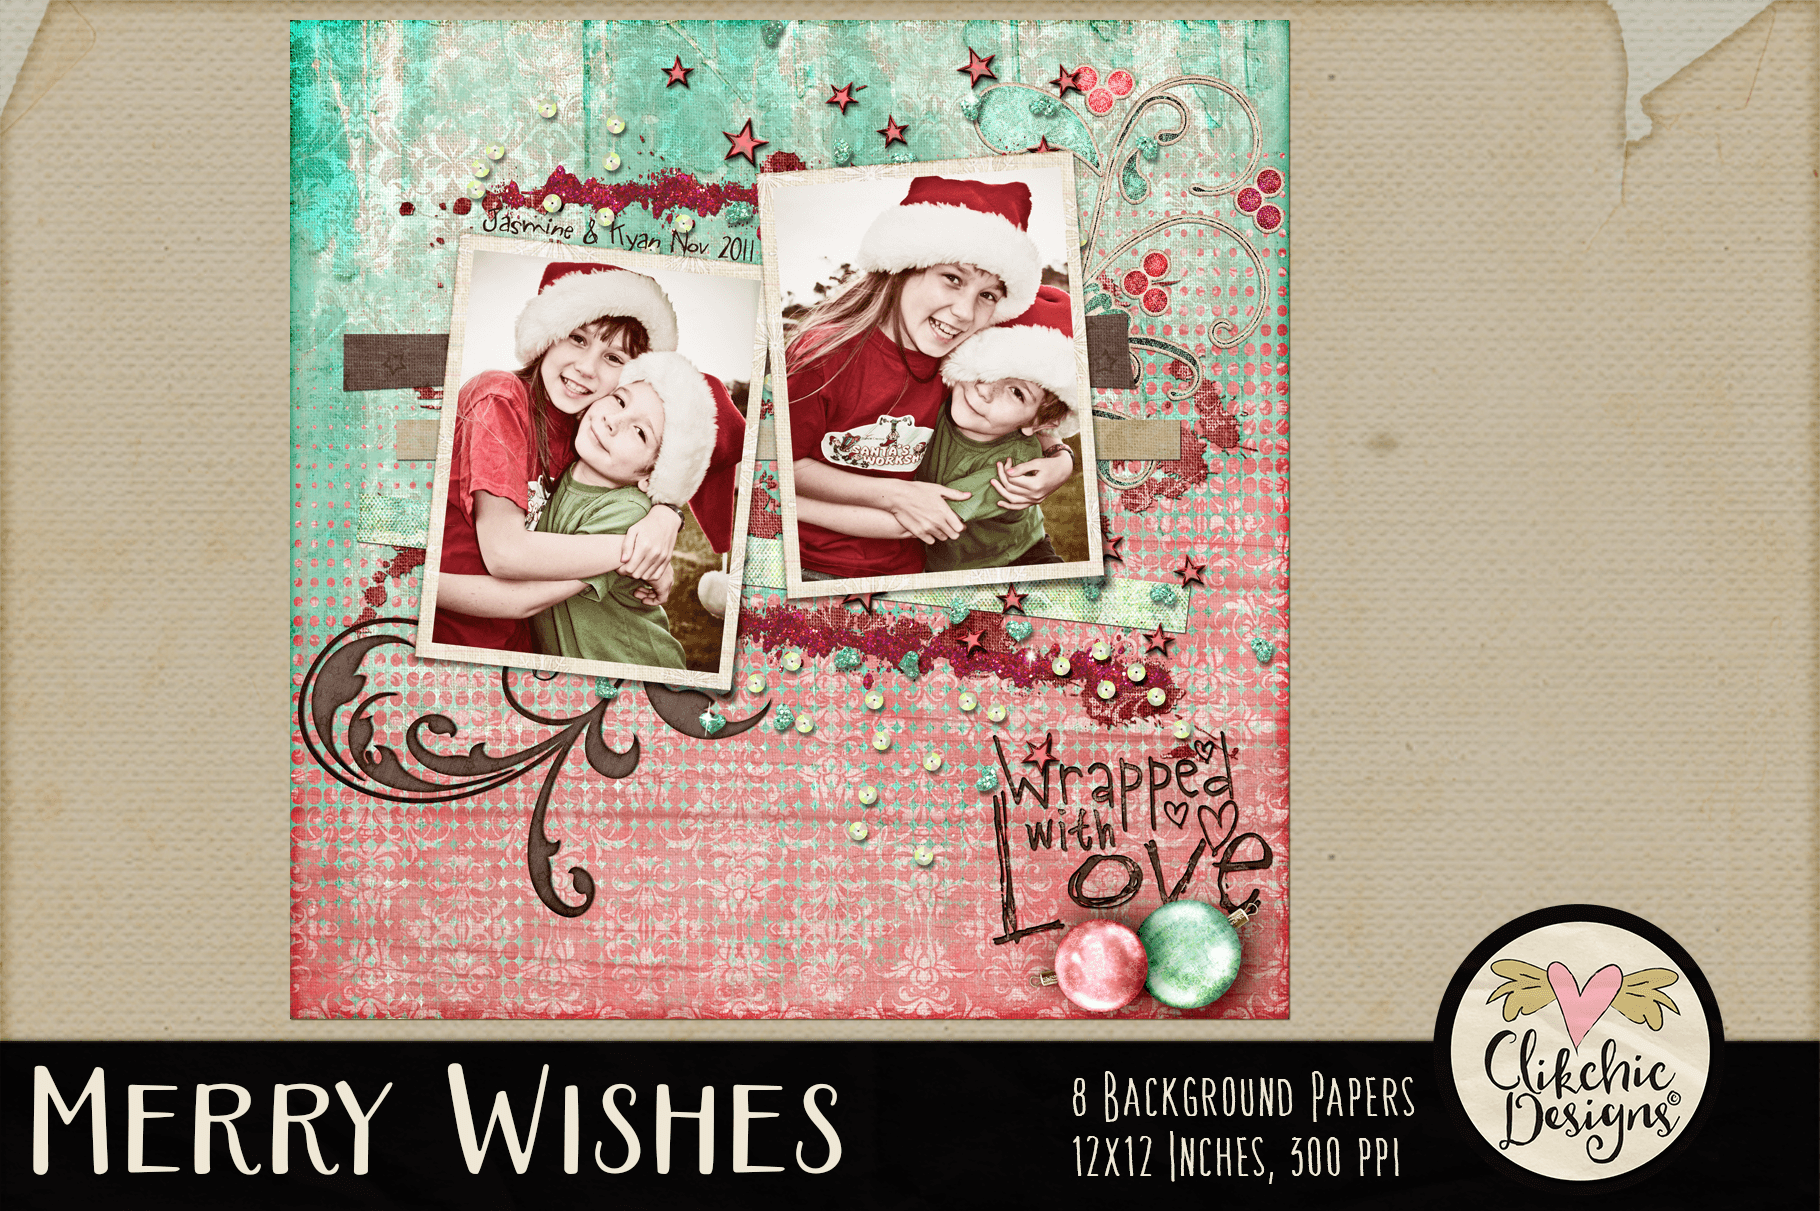 Christmas Backgrounds - Merry Wishes Digital Papers Textures example image 6